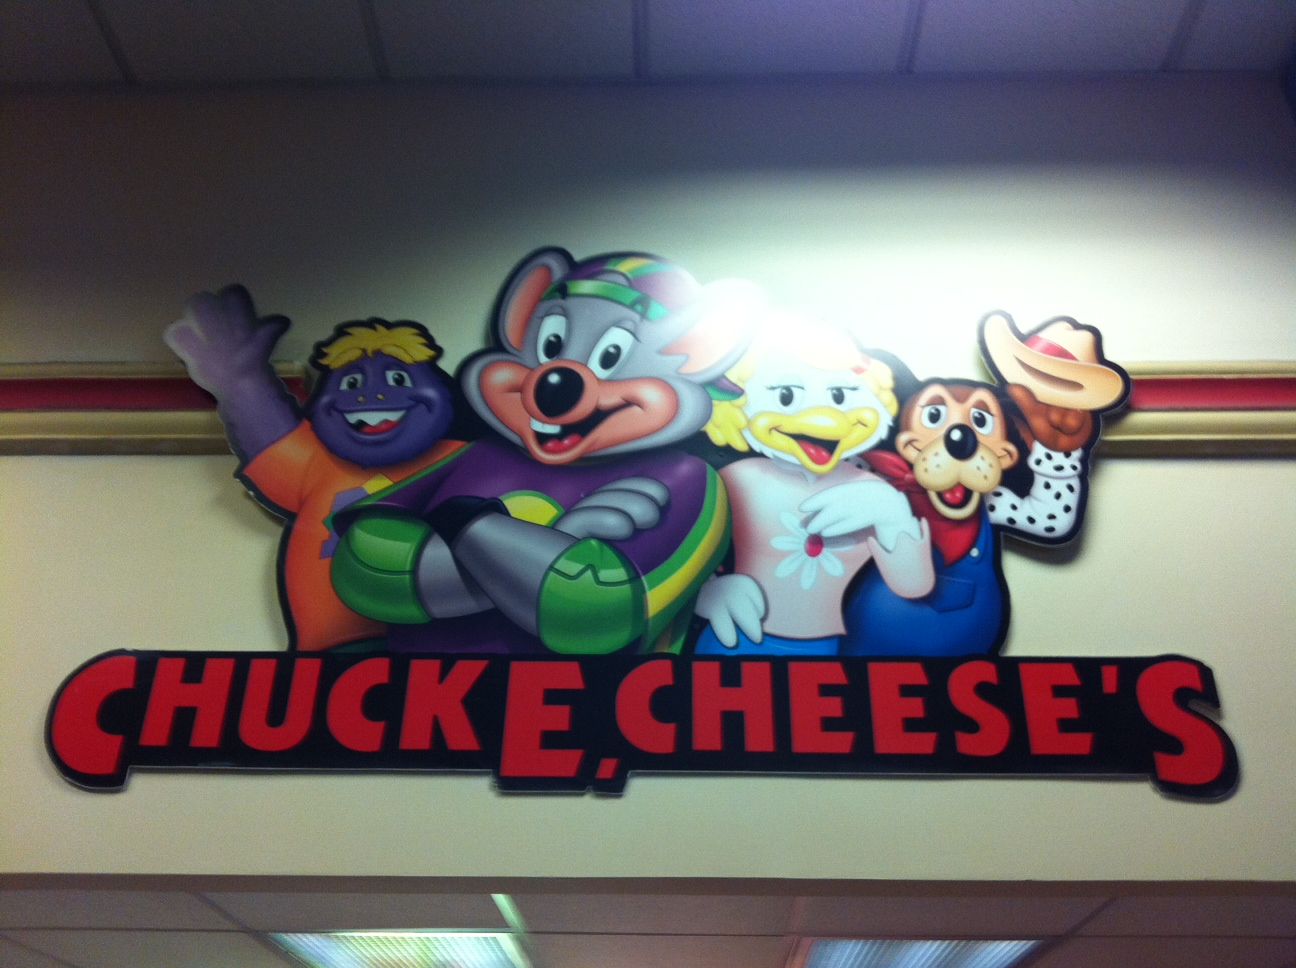 The latest Chuck E Cheese's menu prices for you. Chuck E. Cheese's is a chain of family entertainment centers in the U.S. that offers wholesome family fun in an open environment.